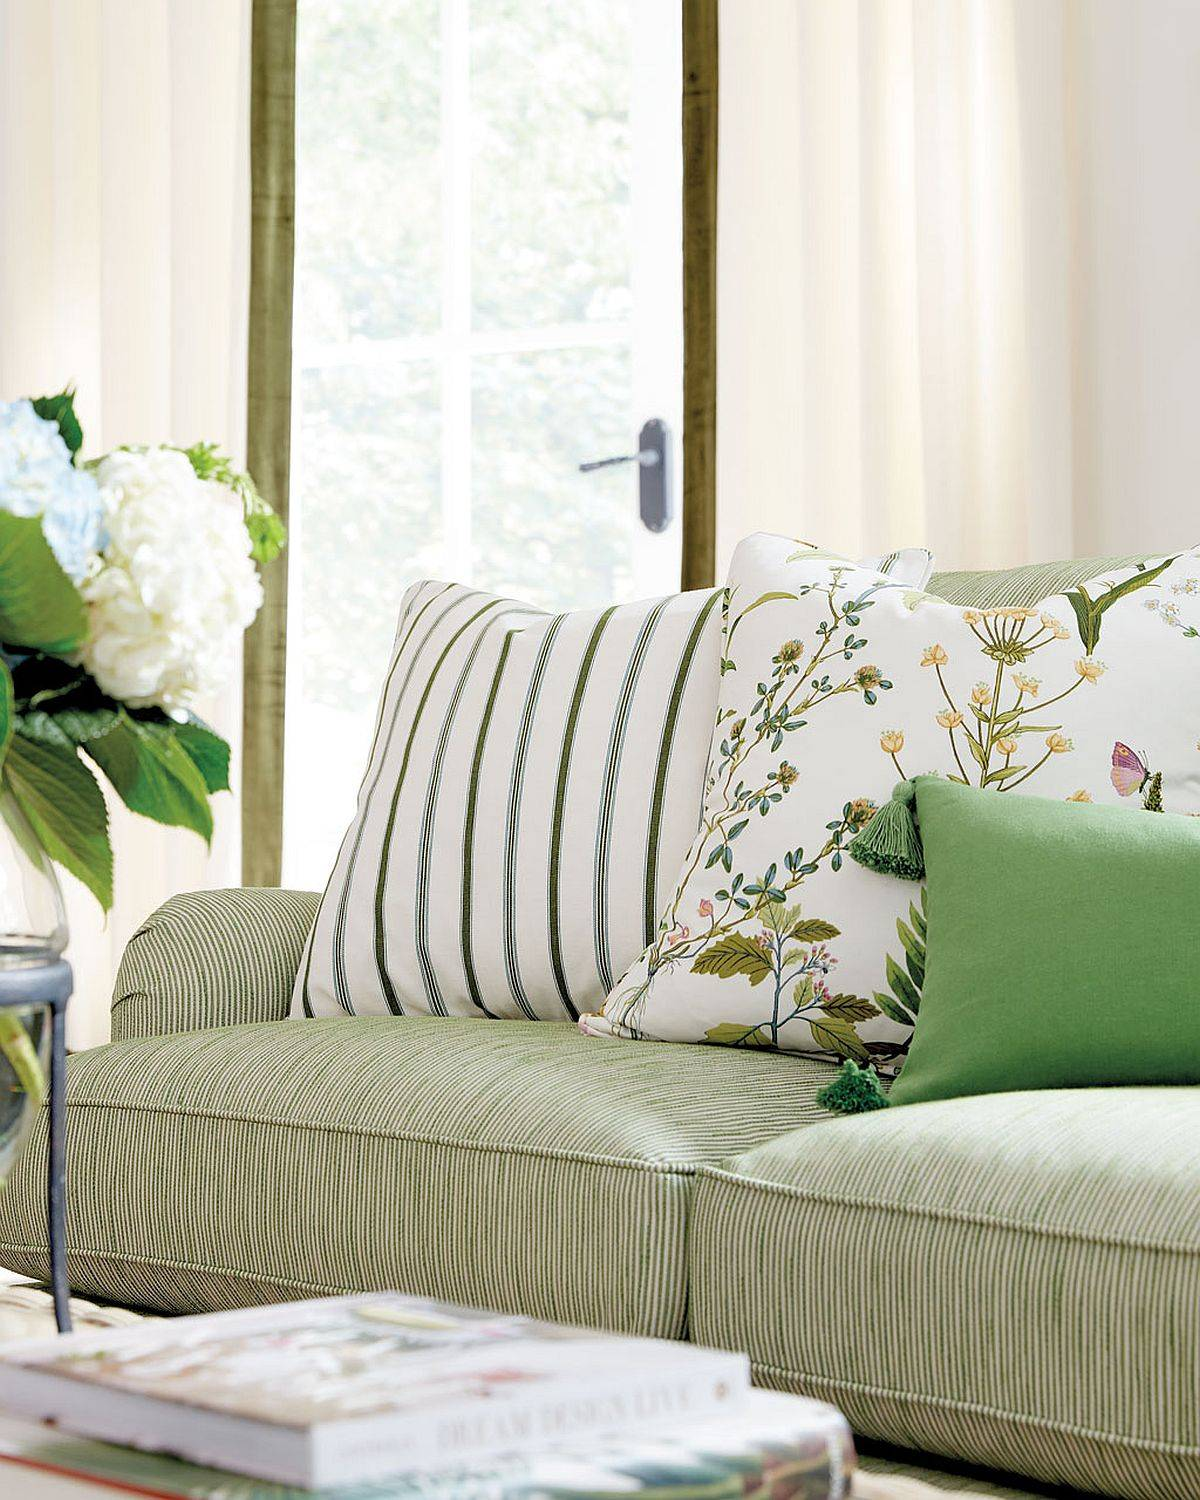 Find-the-perfect-combination-of-accent-pillows-by-trying-out-different-patterns-and-hues-36459